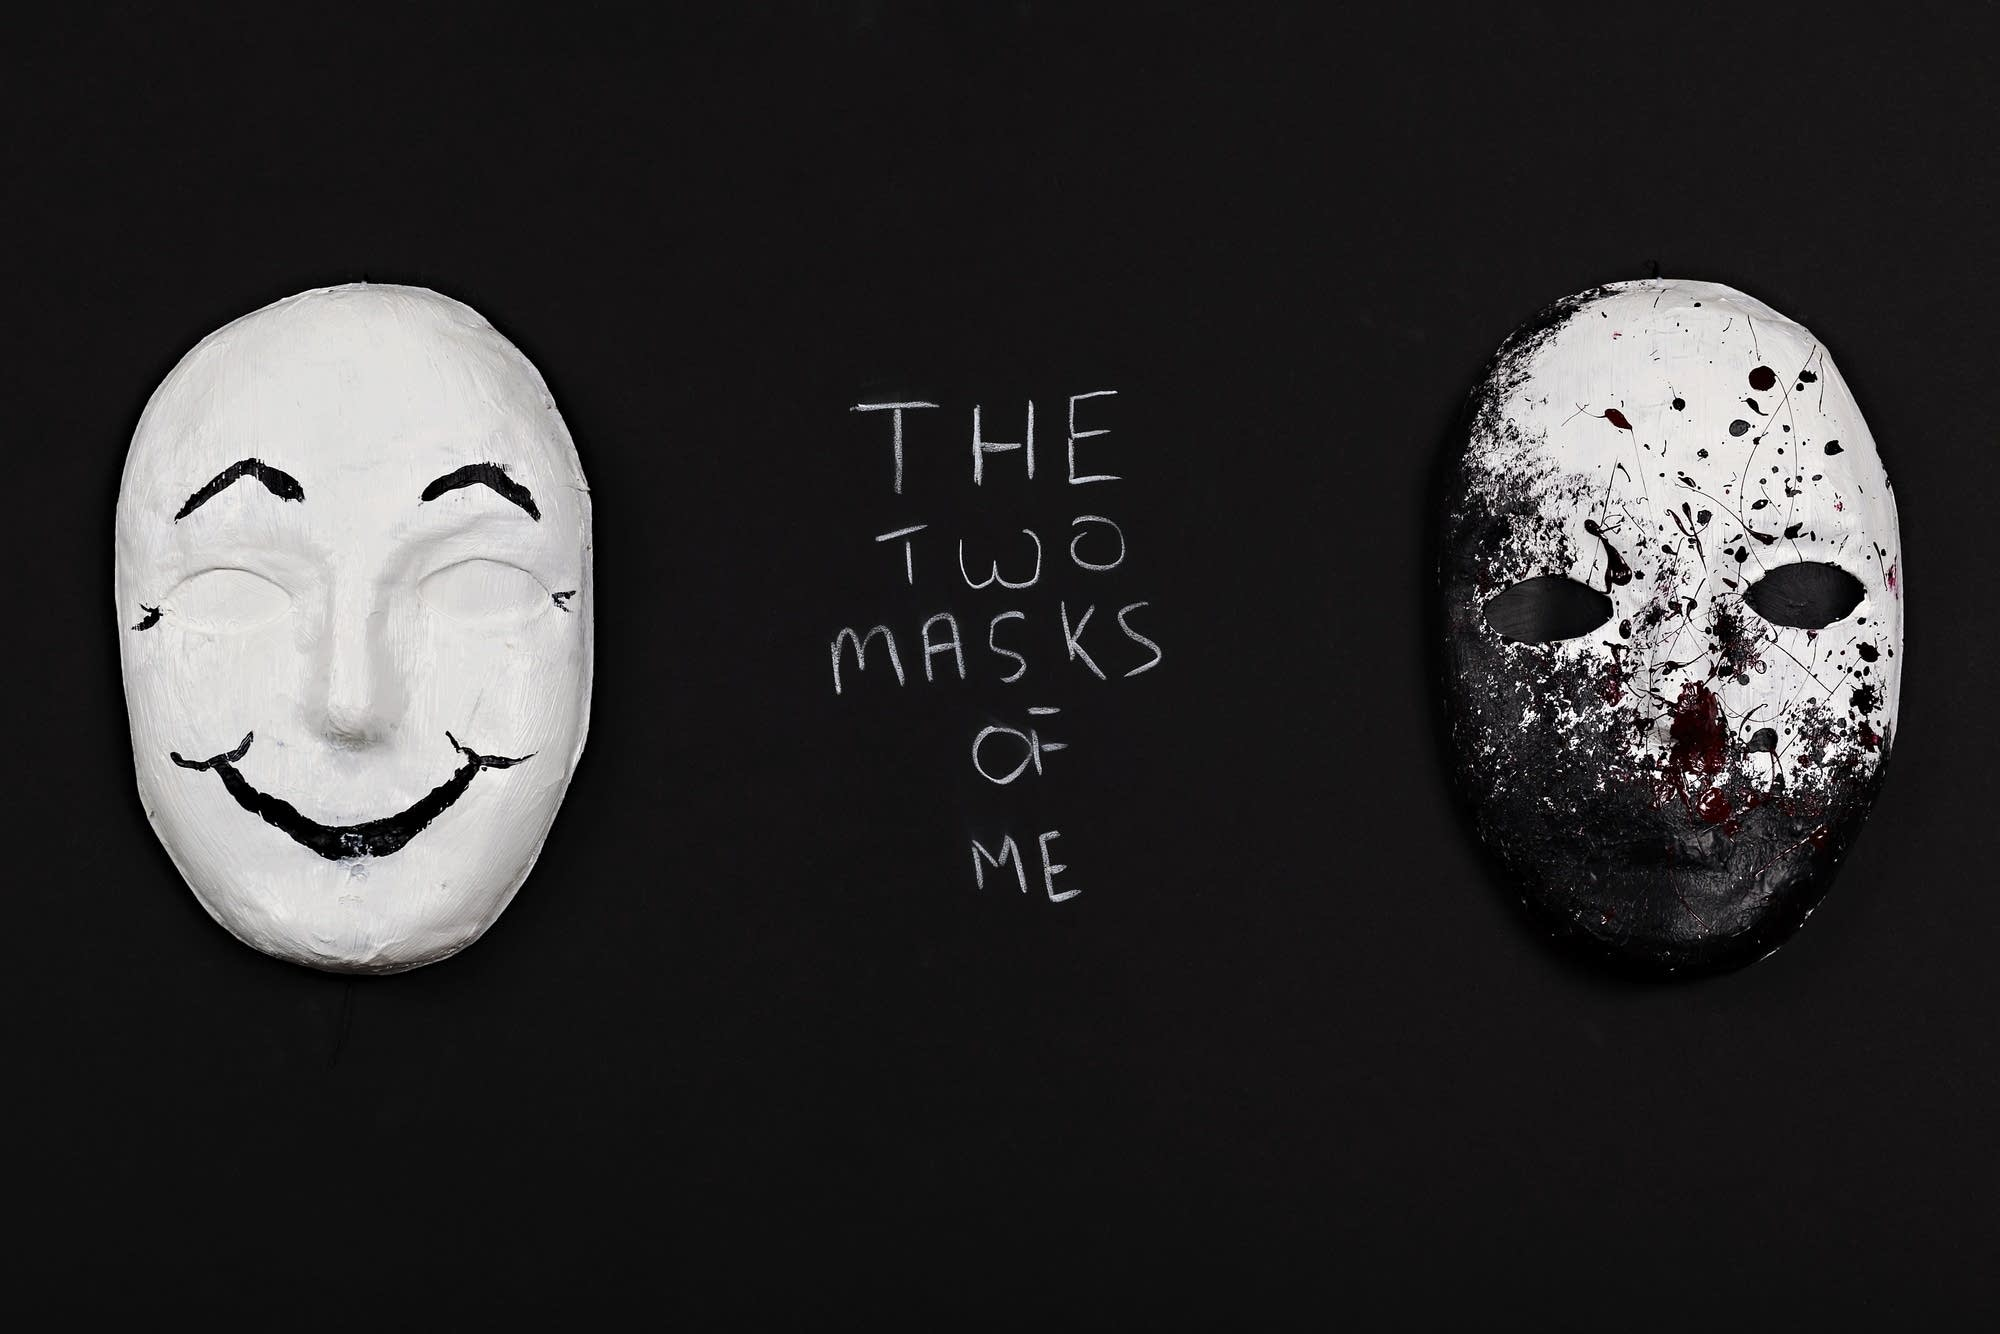 Veteran Steven Fraase created this pair of masks.